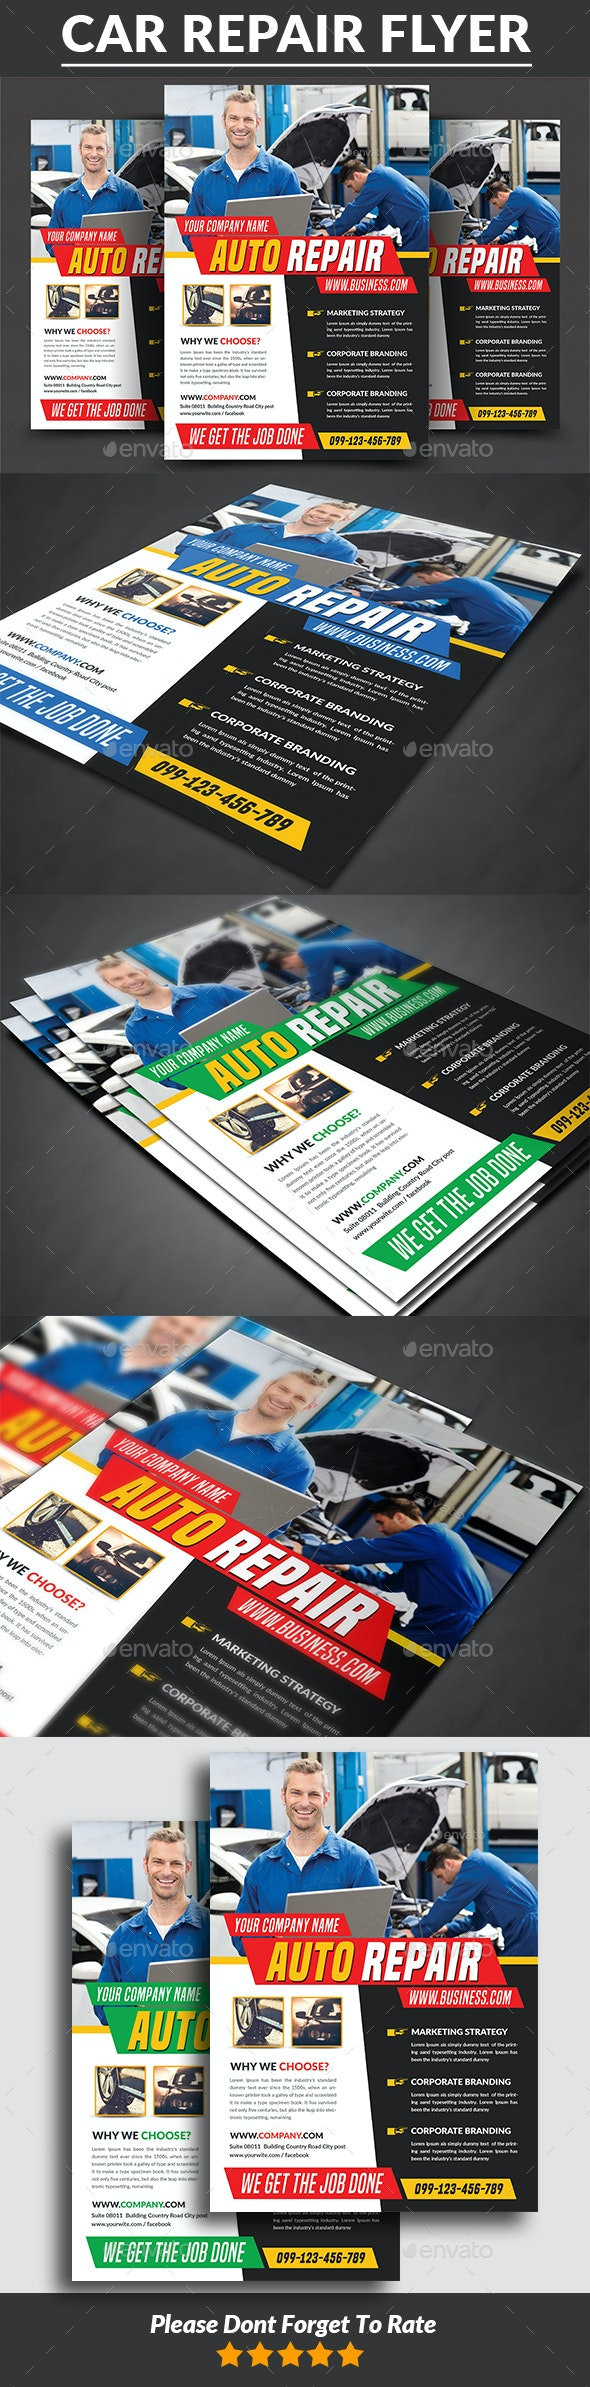 Car Repair Service Flyer - Corporate Flyers